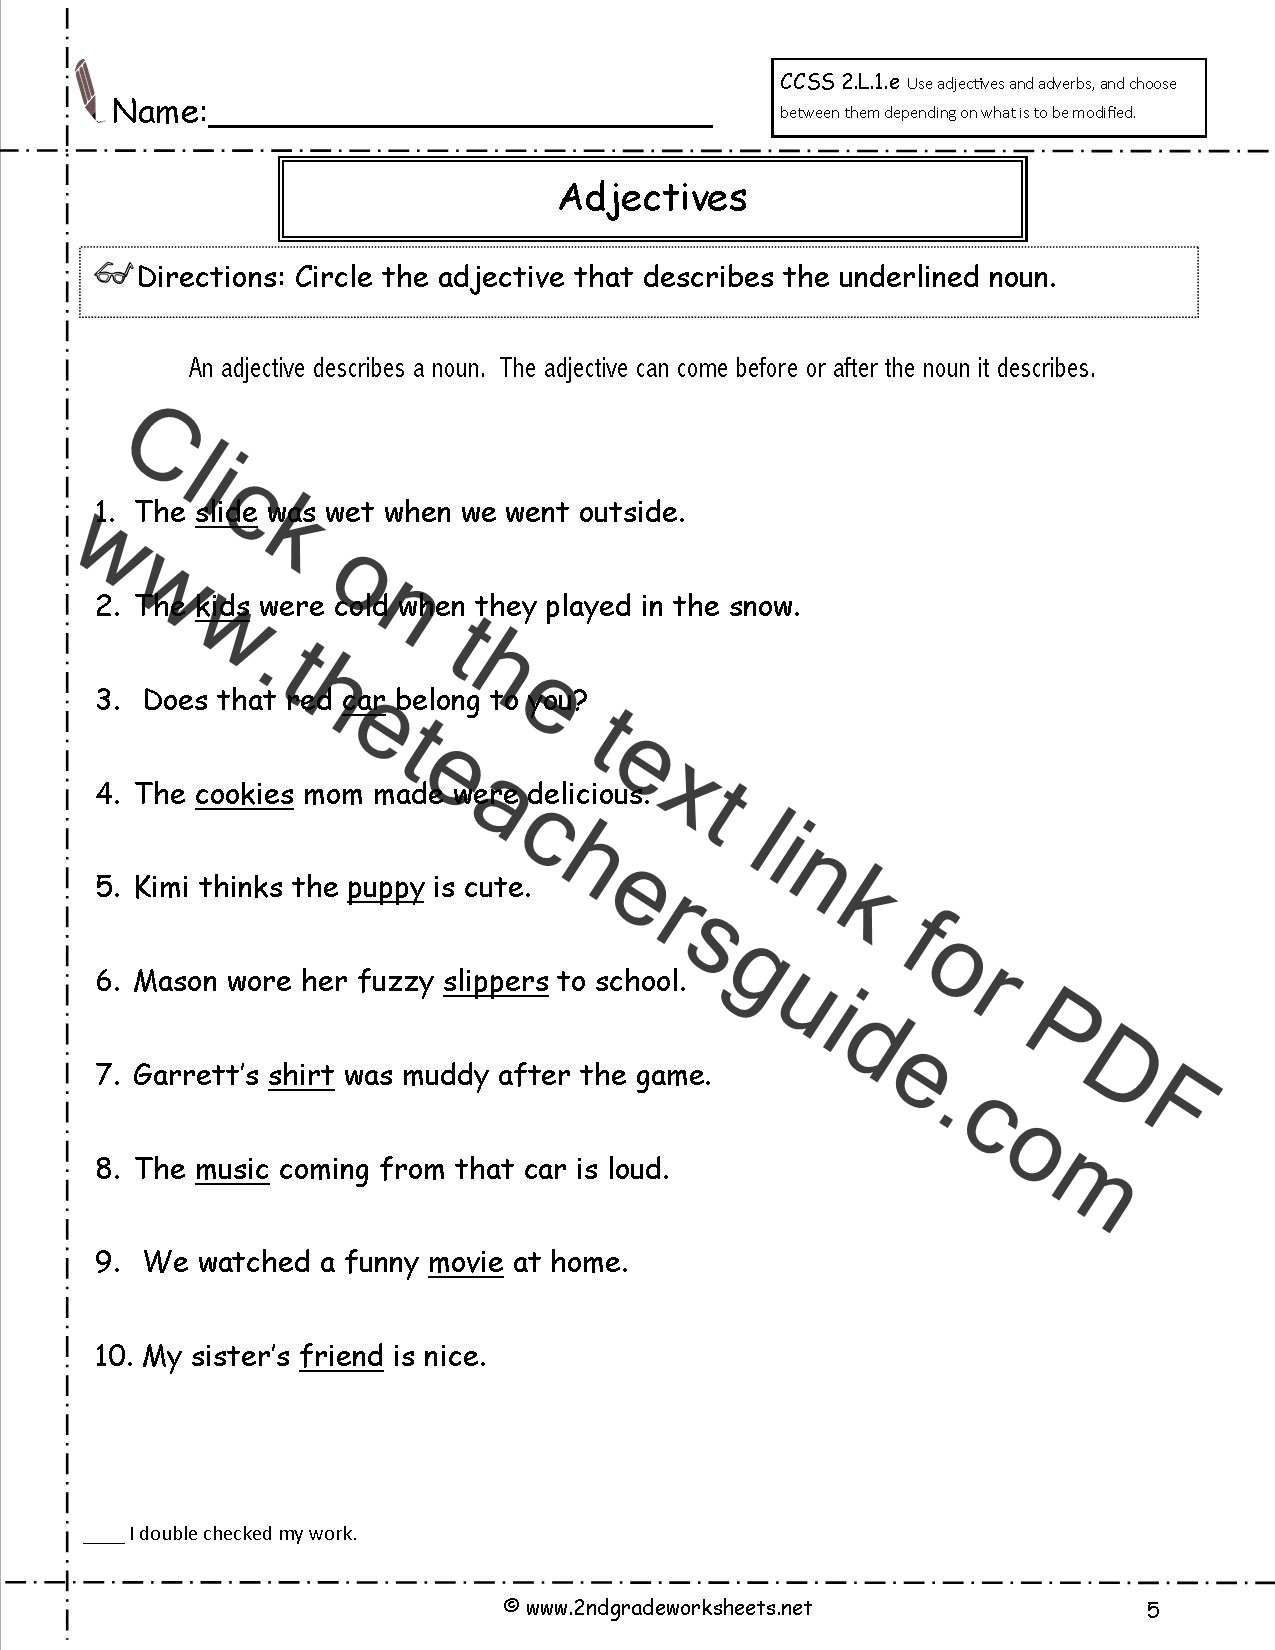 Adjectives and adverbs worksheets for grade 3 worksheet printable 2 ...